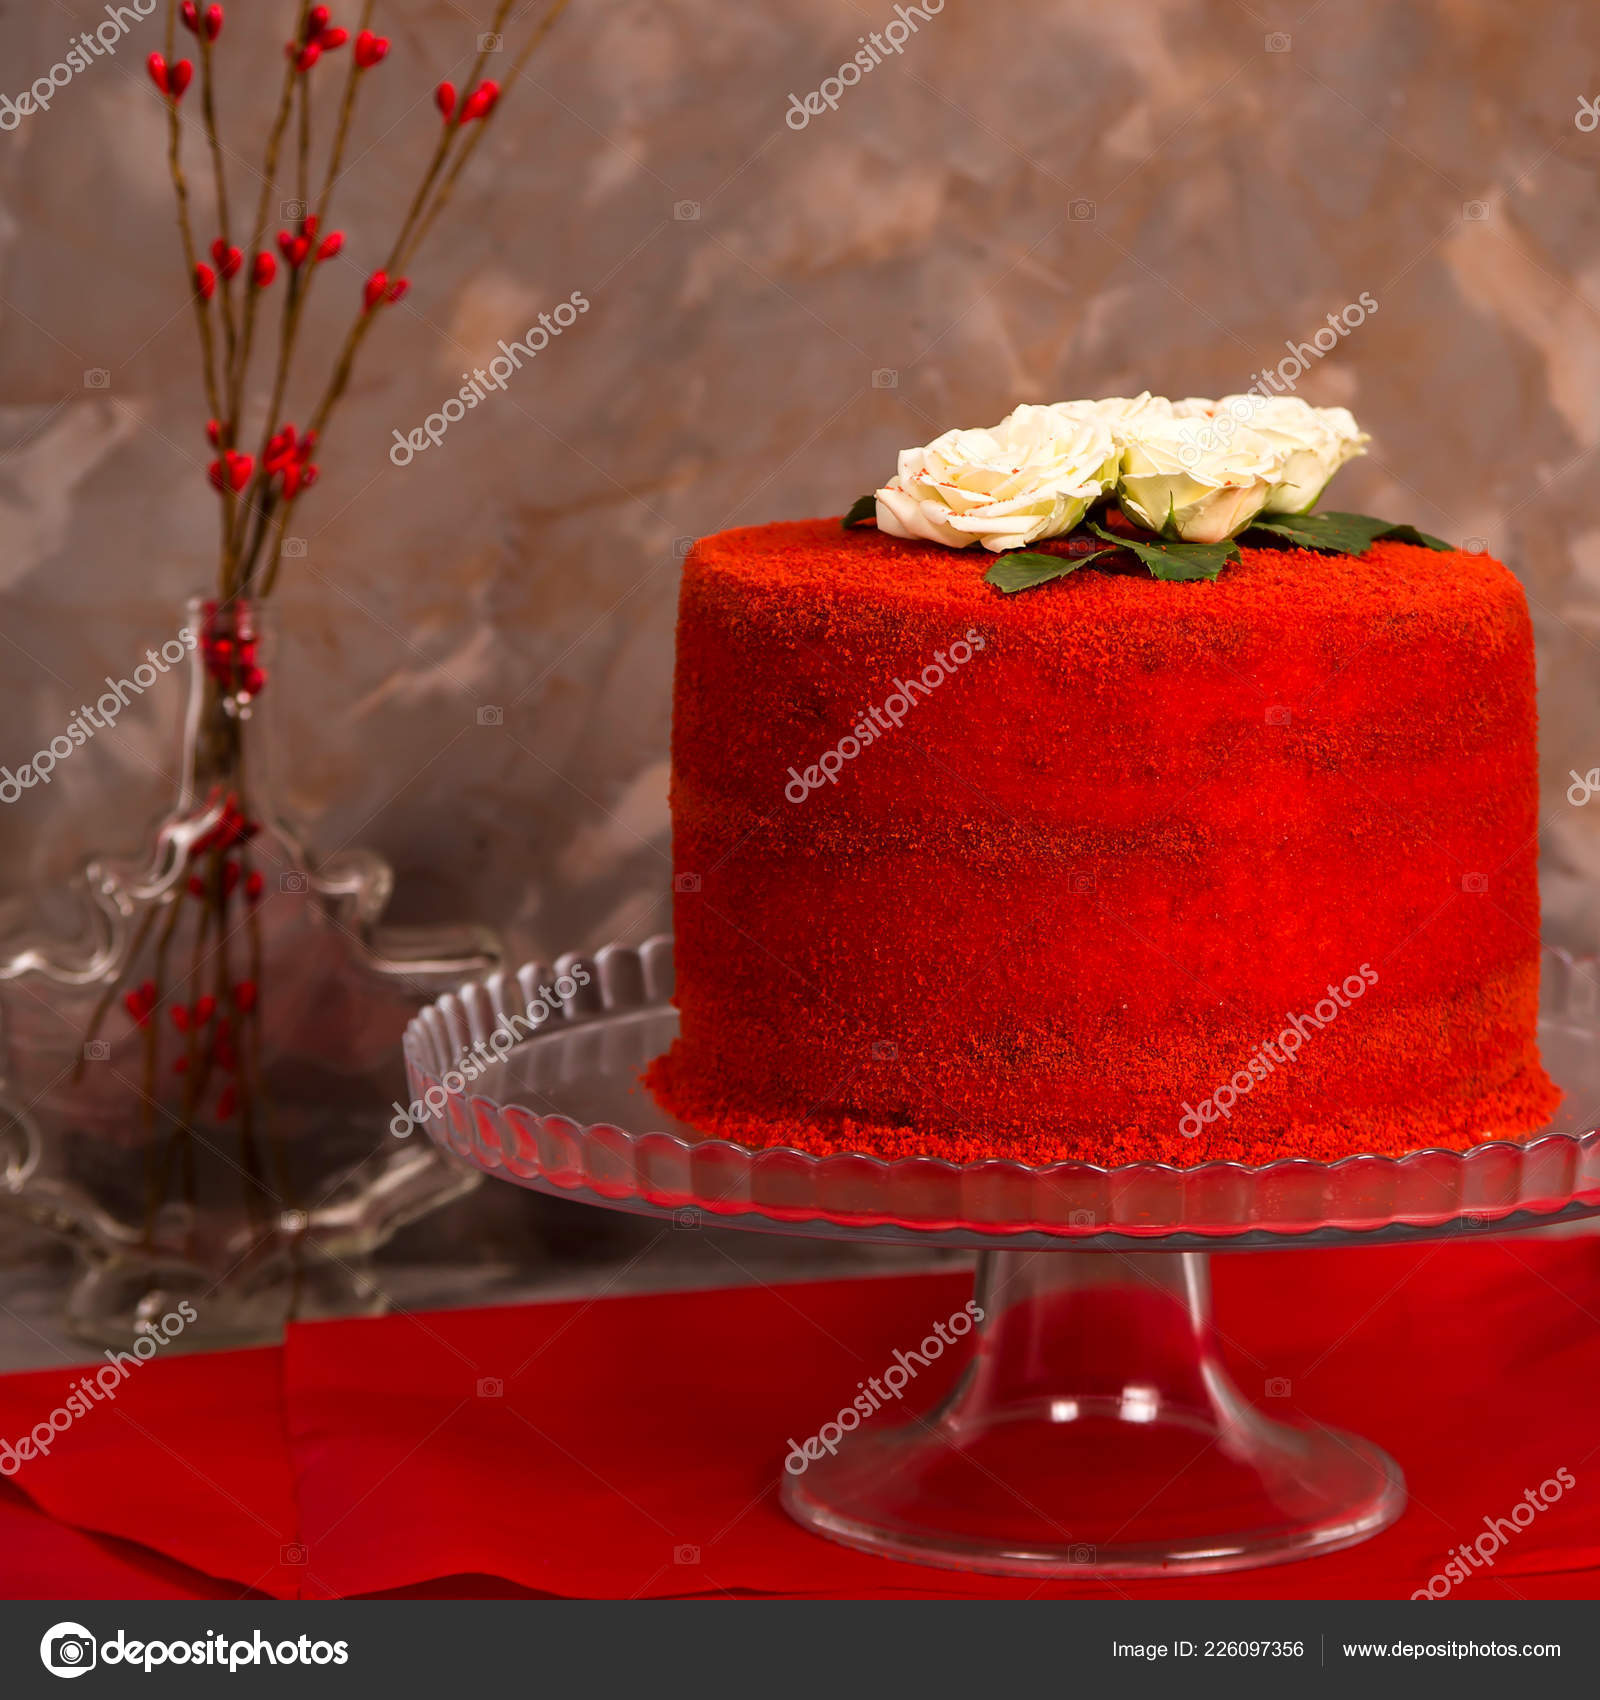 Amazing Red Velvet Birthday Cake Decorating Ideas Beautiful Red Velvet Funny Birthday Cards Online Alyptdamsfinfo